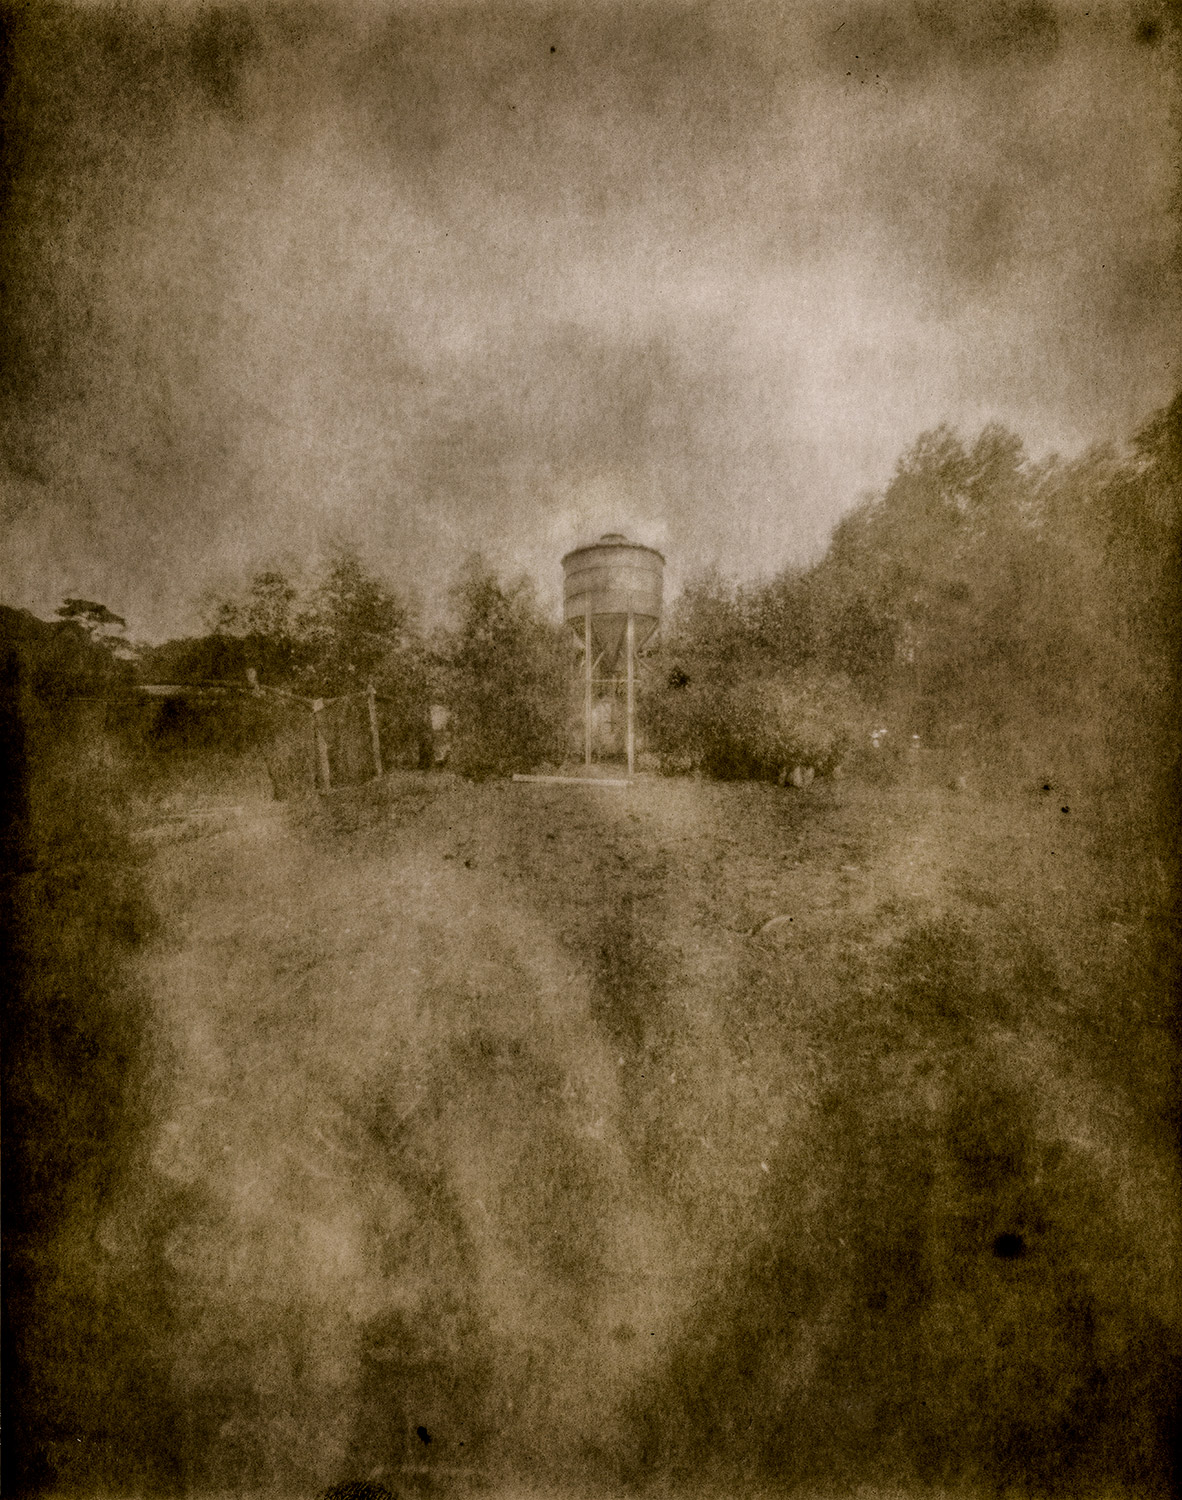 Reality So Subtle 4x5 Pinhole on very fogged paper negative, developed in Caffenol.